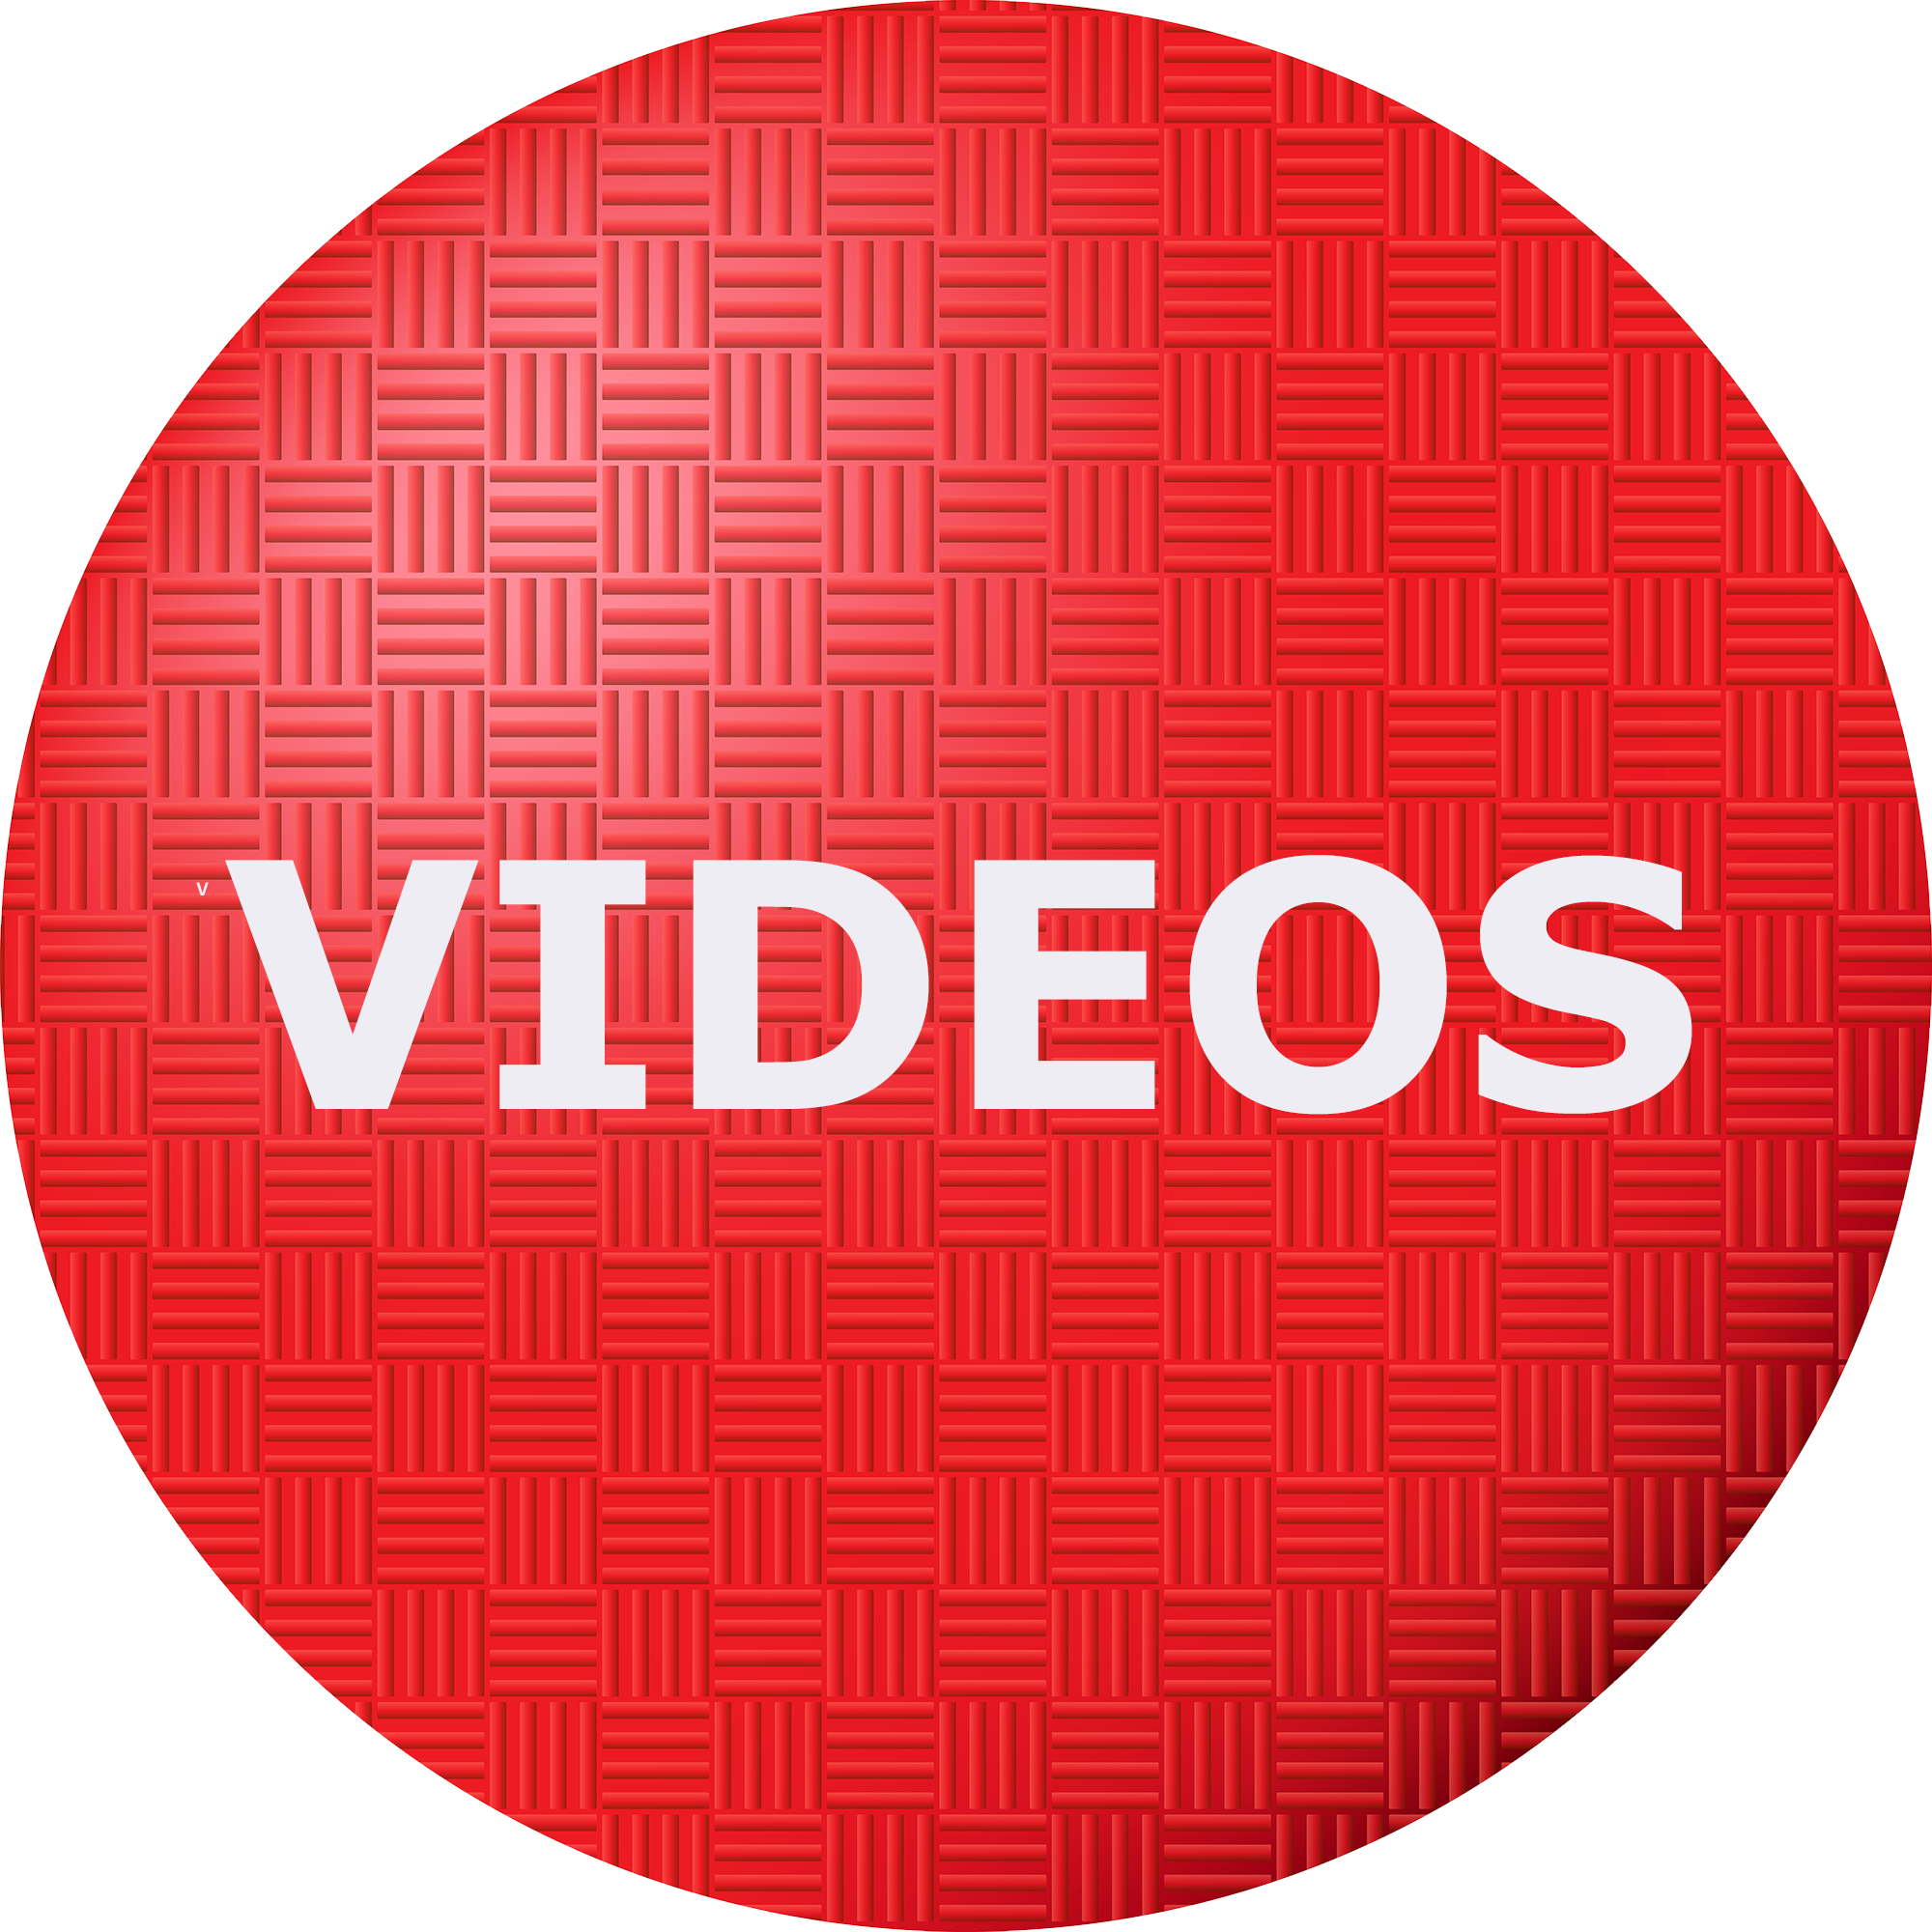 Videos to improve your English